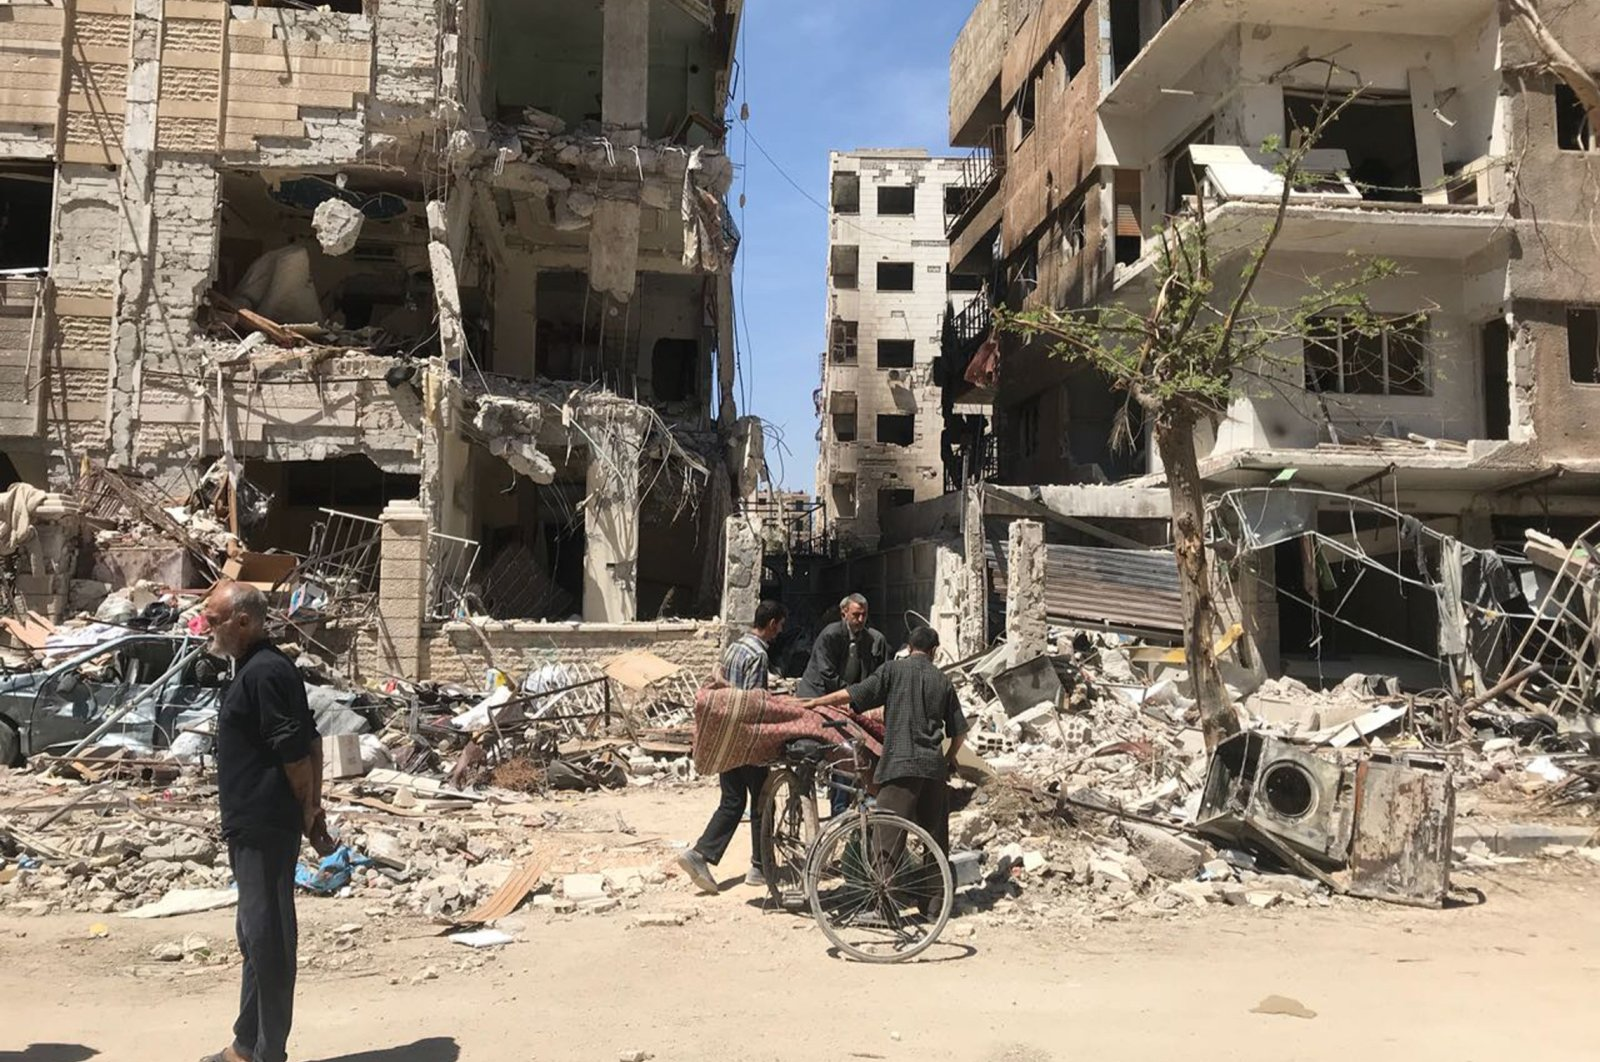 People stand in front of damaged buildings, in the town of Douma, the site of a chemical weapons attack, near Damascus, Syria, Monday, April 16, 2018. (AP Photo/Hassan Ammar)